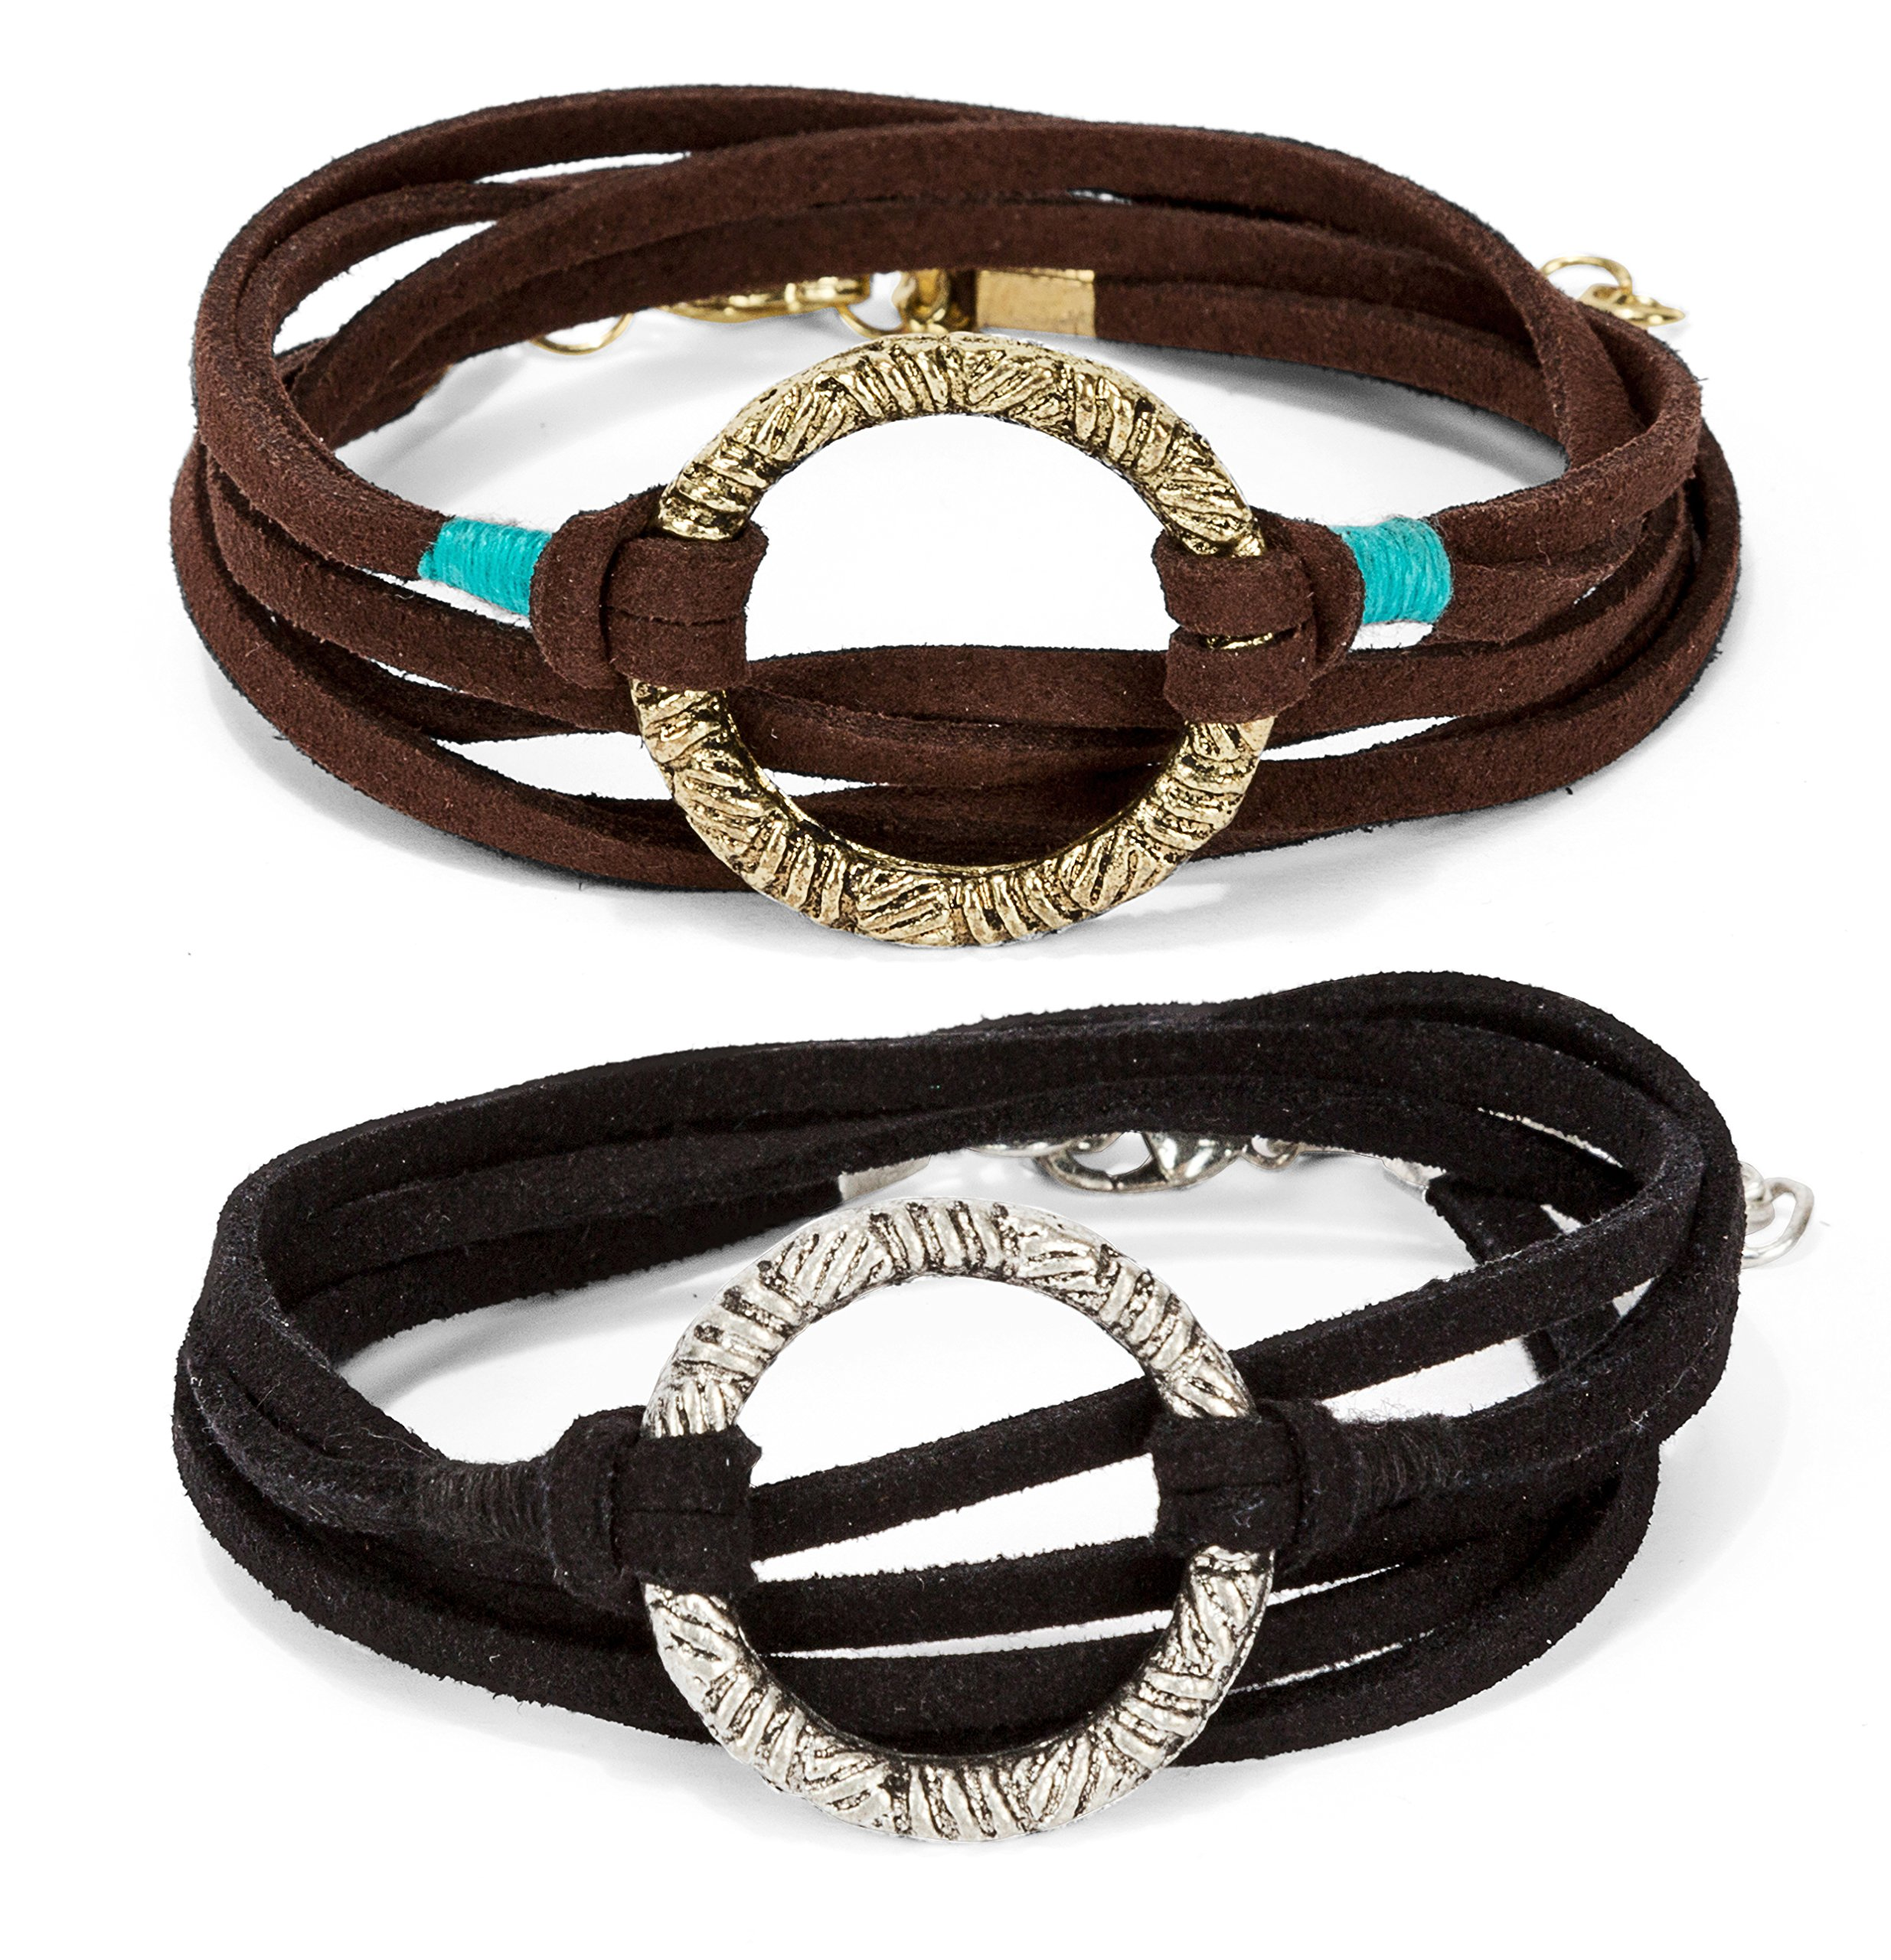 New! 2 Pack: Handmade 3 Wrap Antique Gold/Silver Circle Brown/Black Suede with Teal Accent Leather Bracelet with Adjustment Chain | SPUNKYsoul Collection by SPUNKYsoul